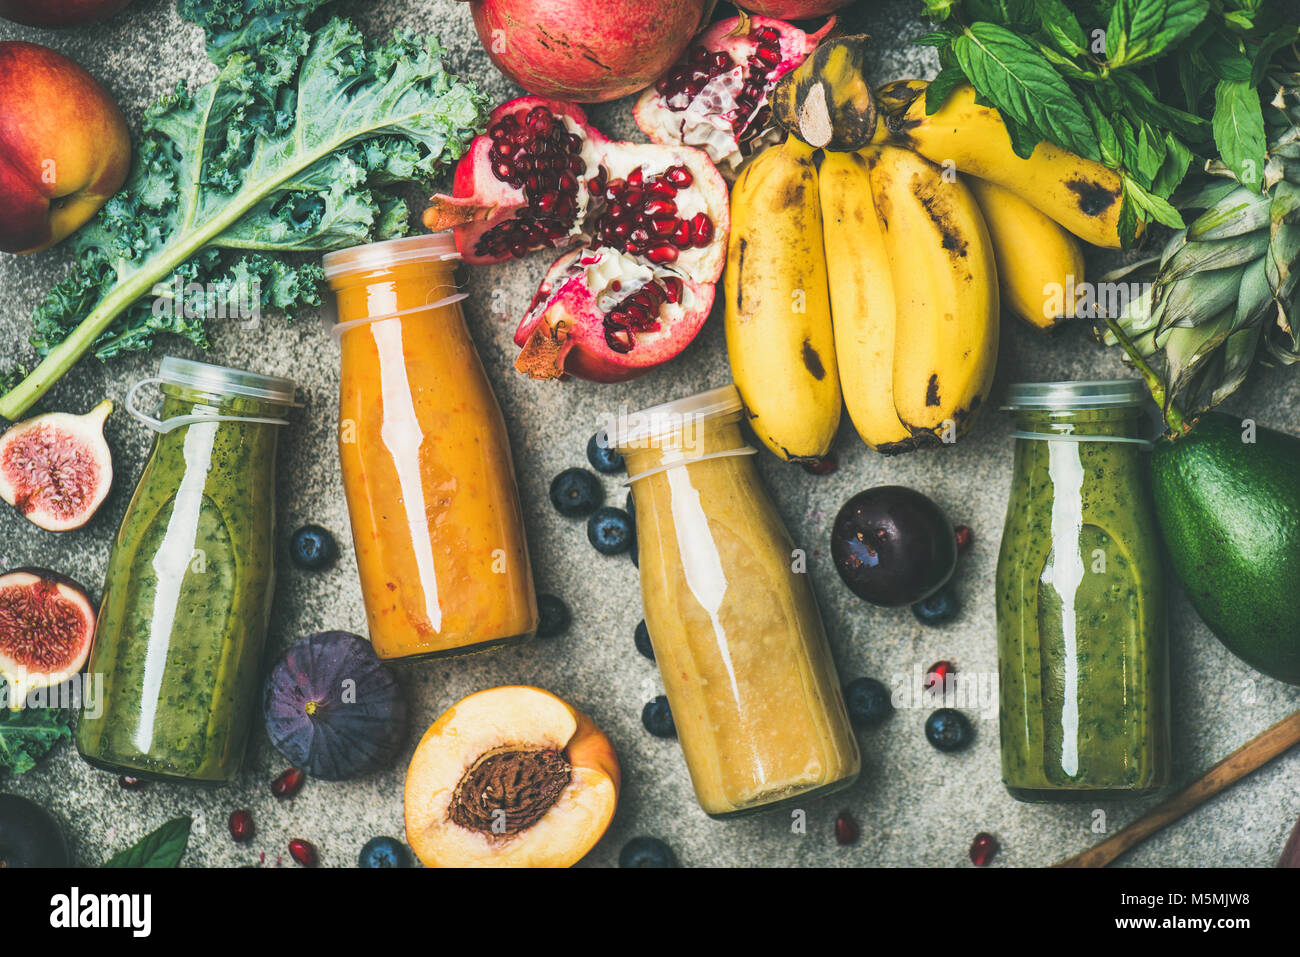 Colorful smoothies in bottles with fresh tropical fruit and vegetables - Stock Image